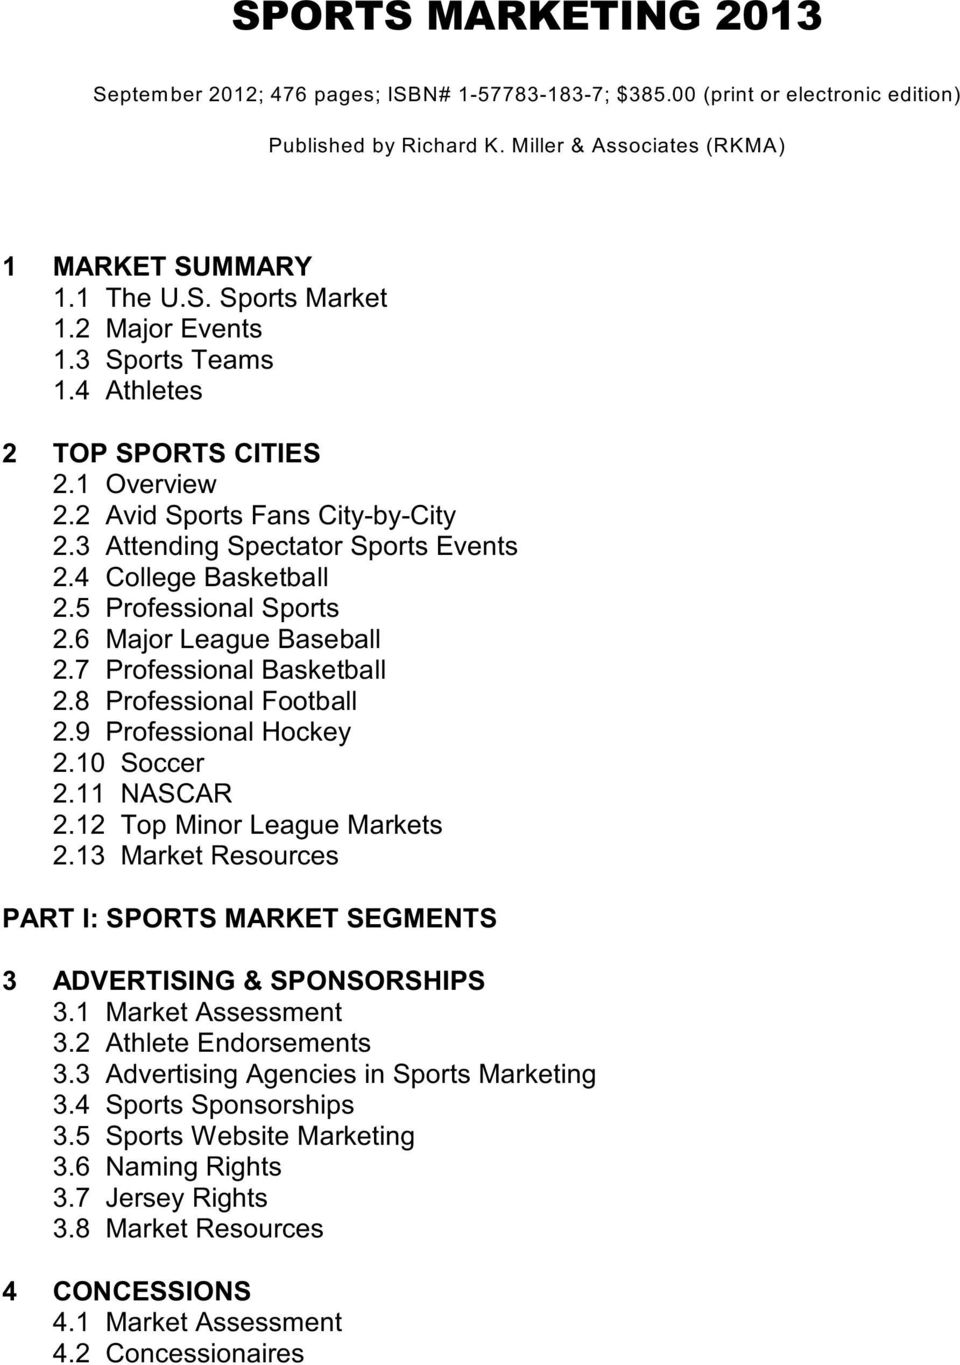 6 Major League Baseball 2.7 Professional Basketball 2.8 Professional Football 2.9 Professional Hockey 2.10 Soccer 2.11 NASCAR 2.12 Top Minor League Markets 2.